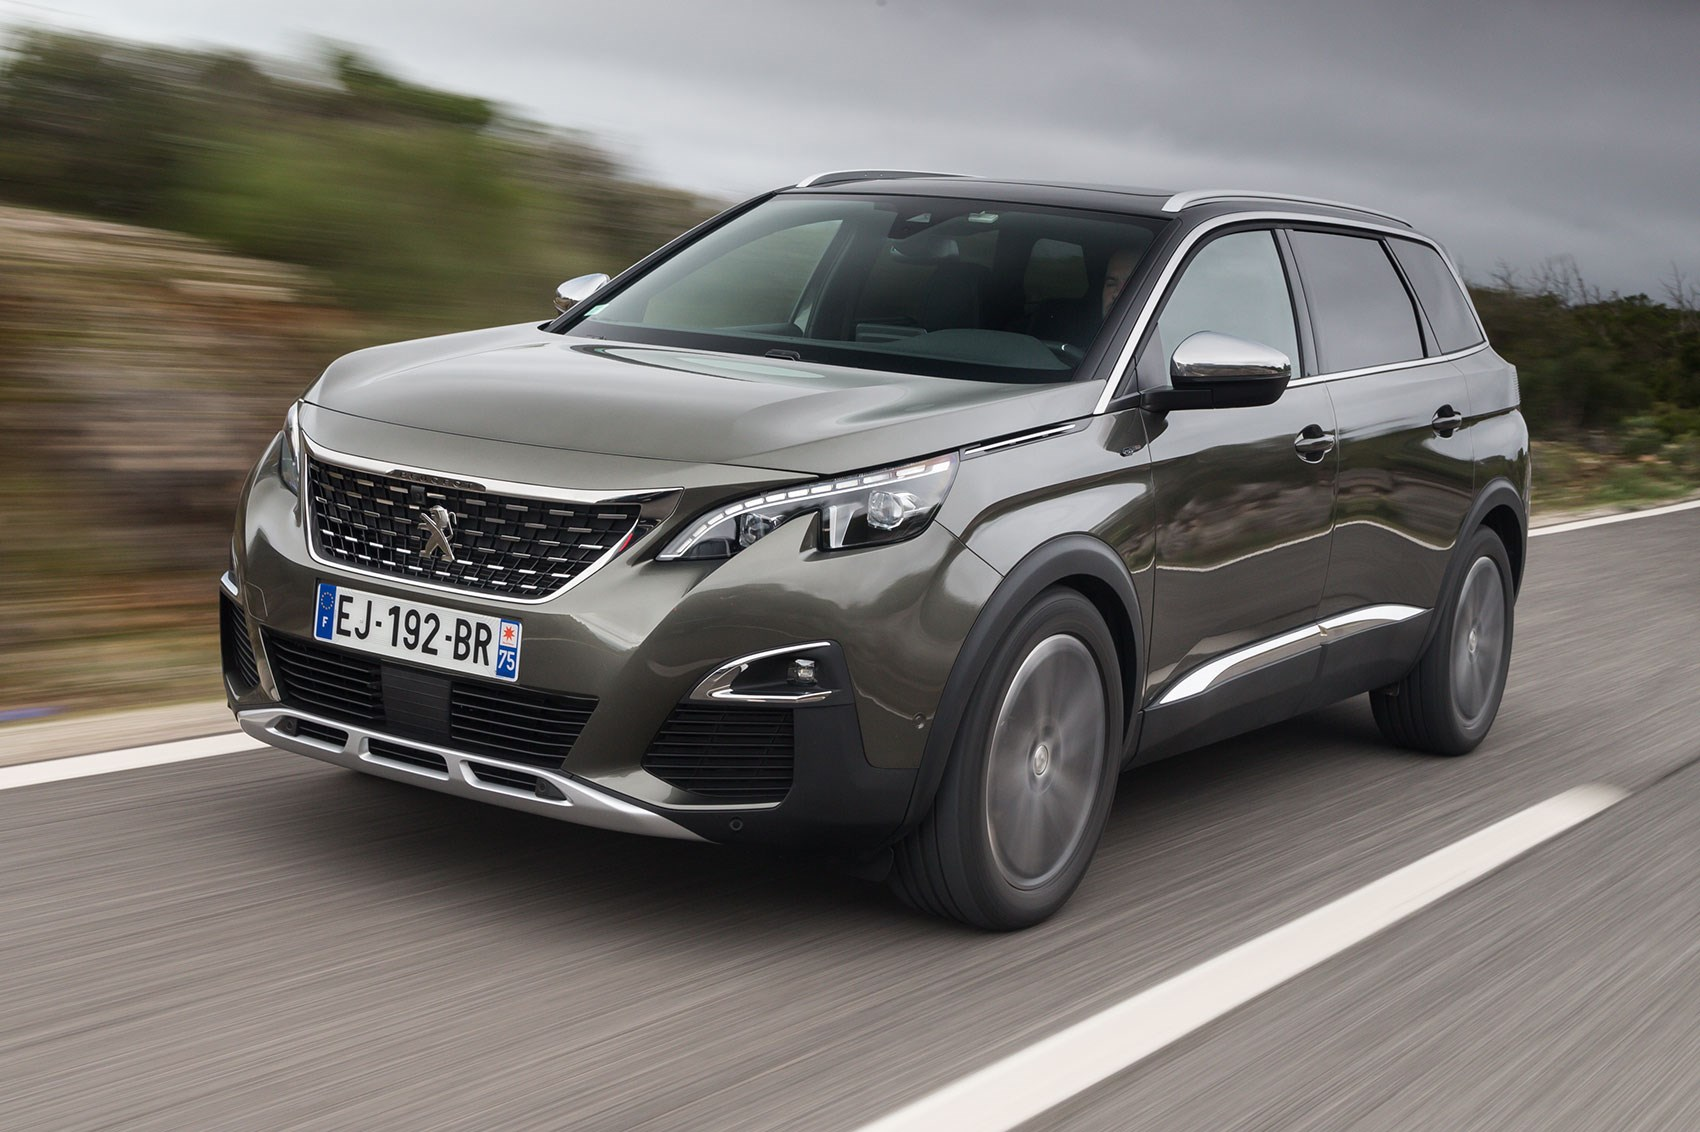 Peugeot 5008 (2018) Review: Gallic Flair In SUV-form